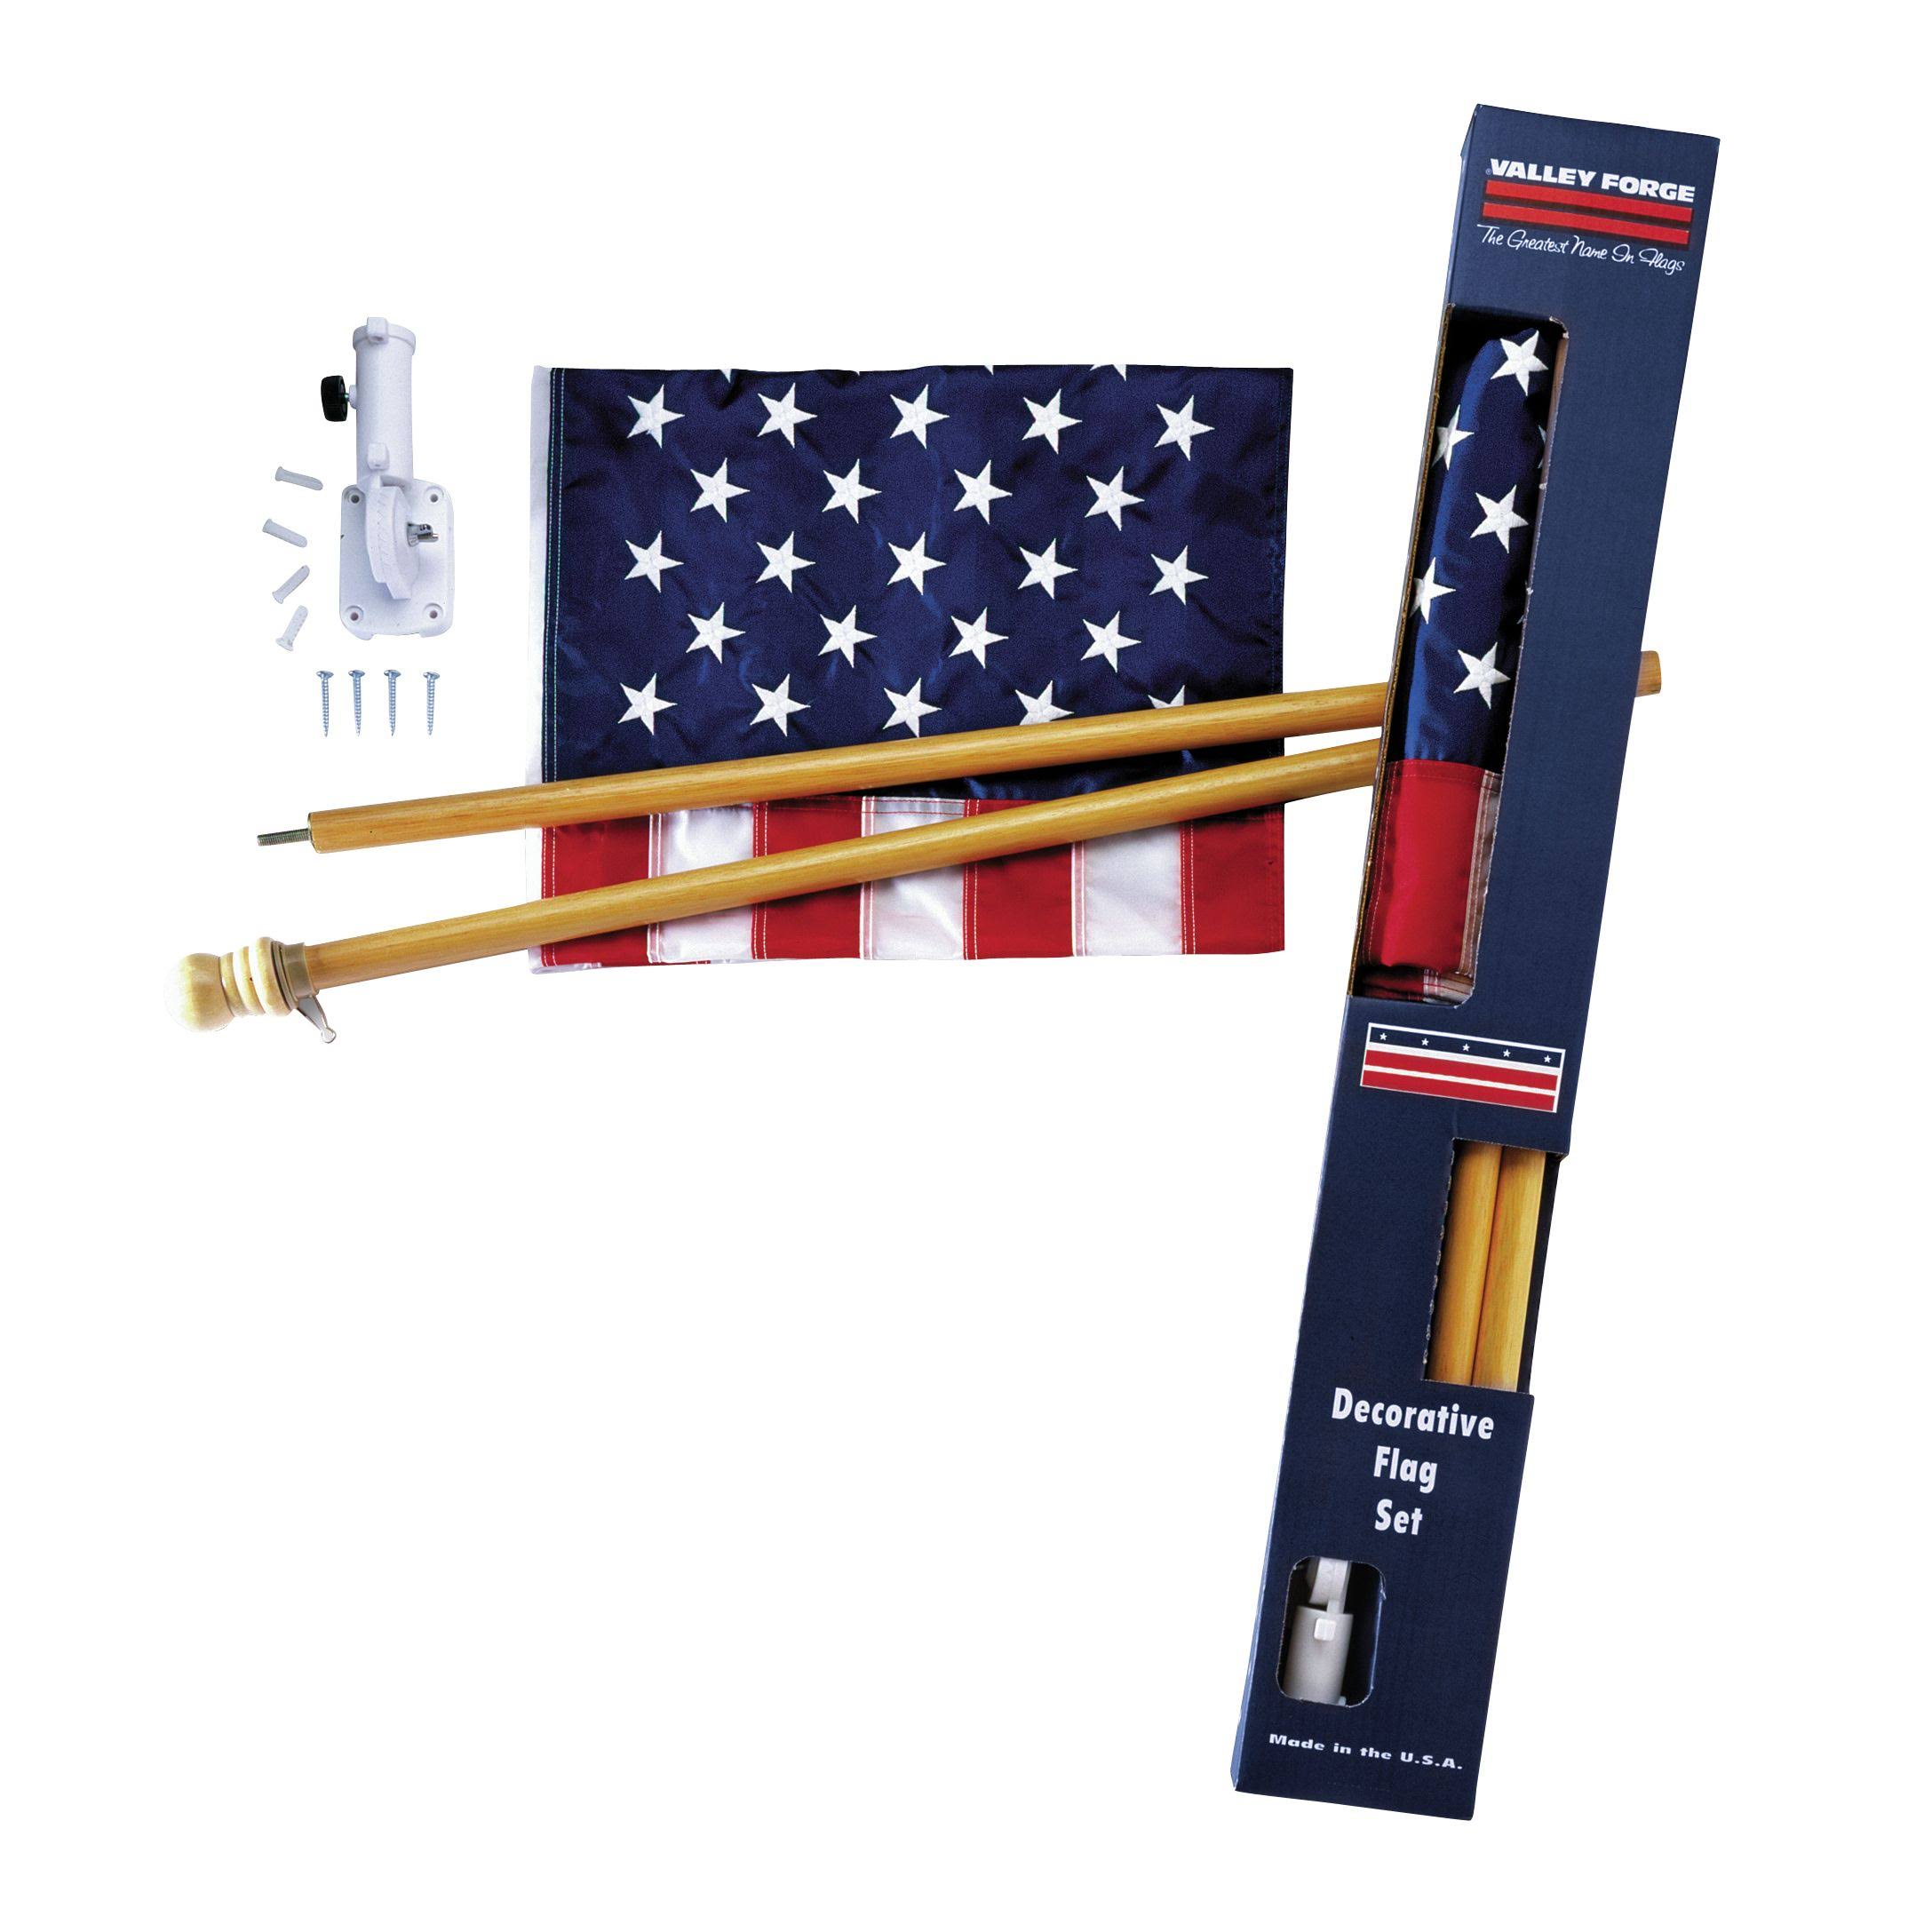 Valley Forge Flag Nylon US Flag Kit - 2-1/2'x4', with 5-Foot Wood Pole and Bracket